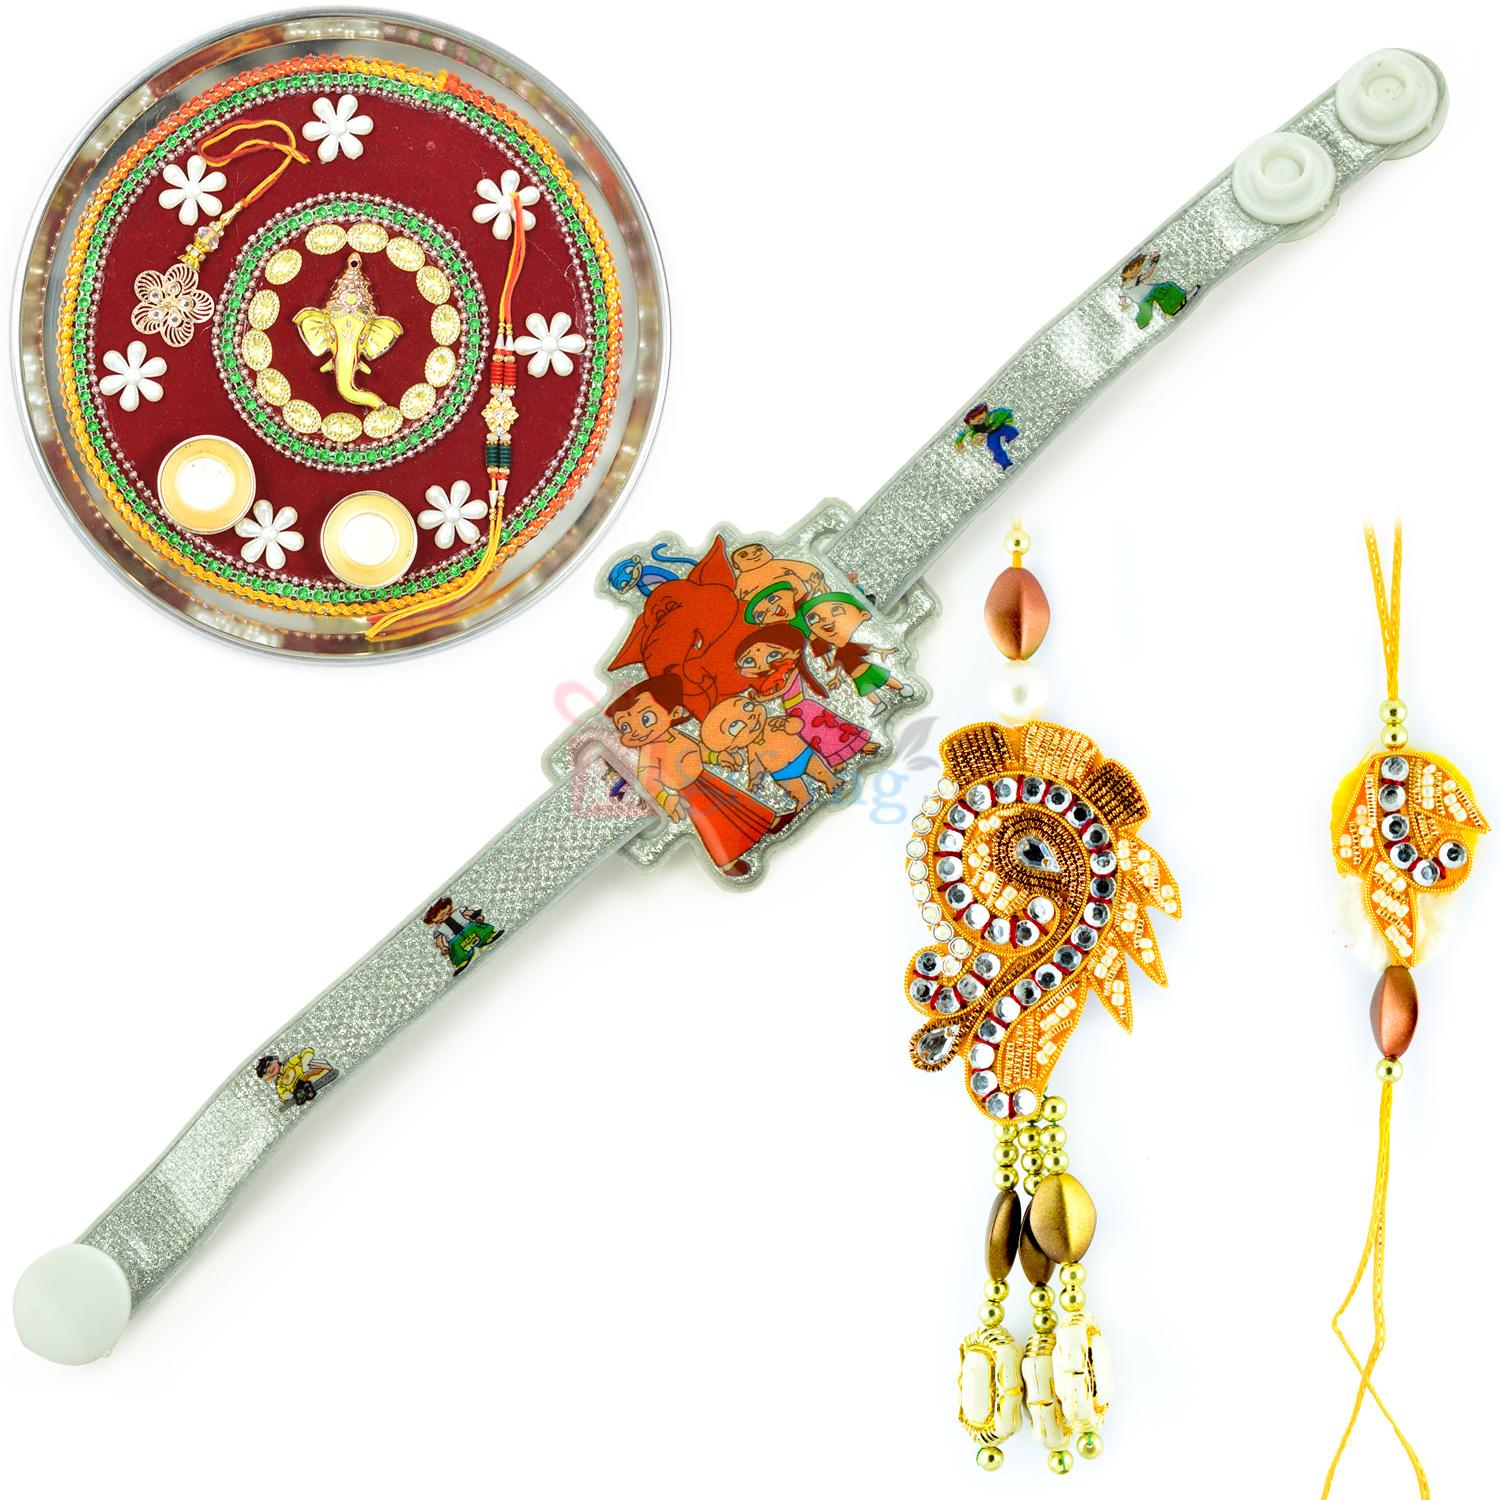 Ganesha Mauli Rakhi Thali with Pair and Kids Rakhi